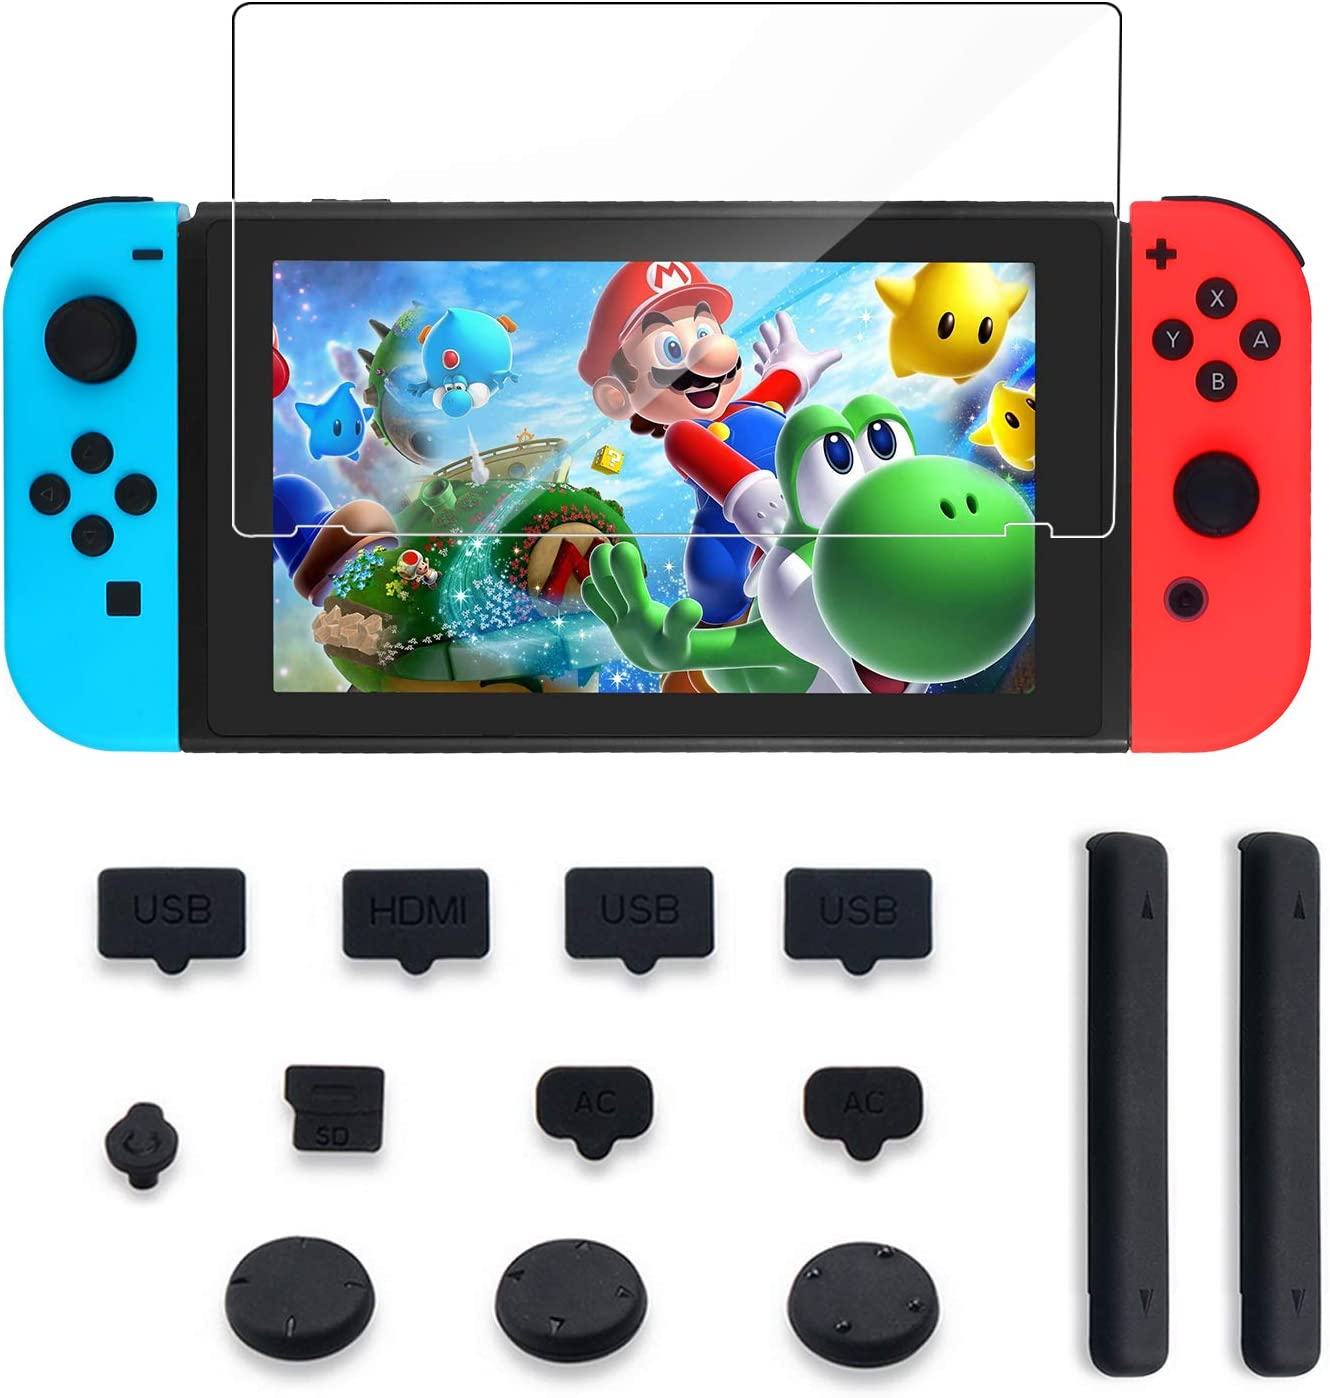 Protector Kit for Nintendo Switch Include Kingtop Nintendo Switch Tempered Glass Screen Protector+Dust Proof Rubber Plug Kit +Extension Card Slot